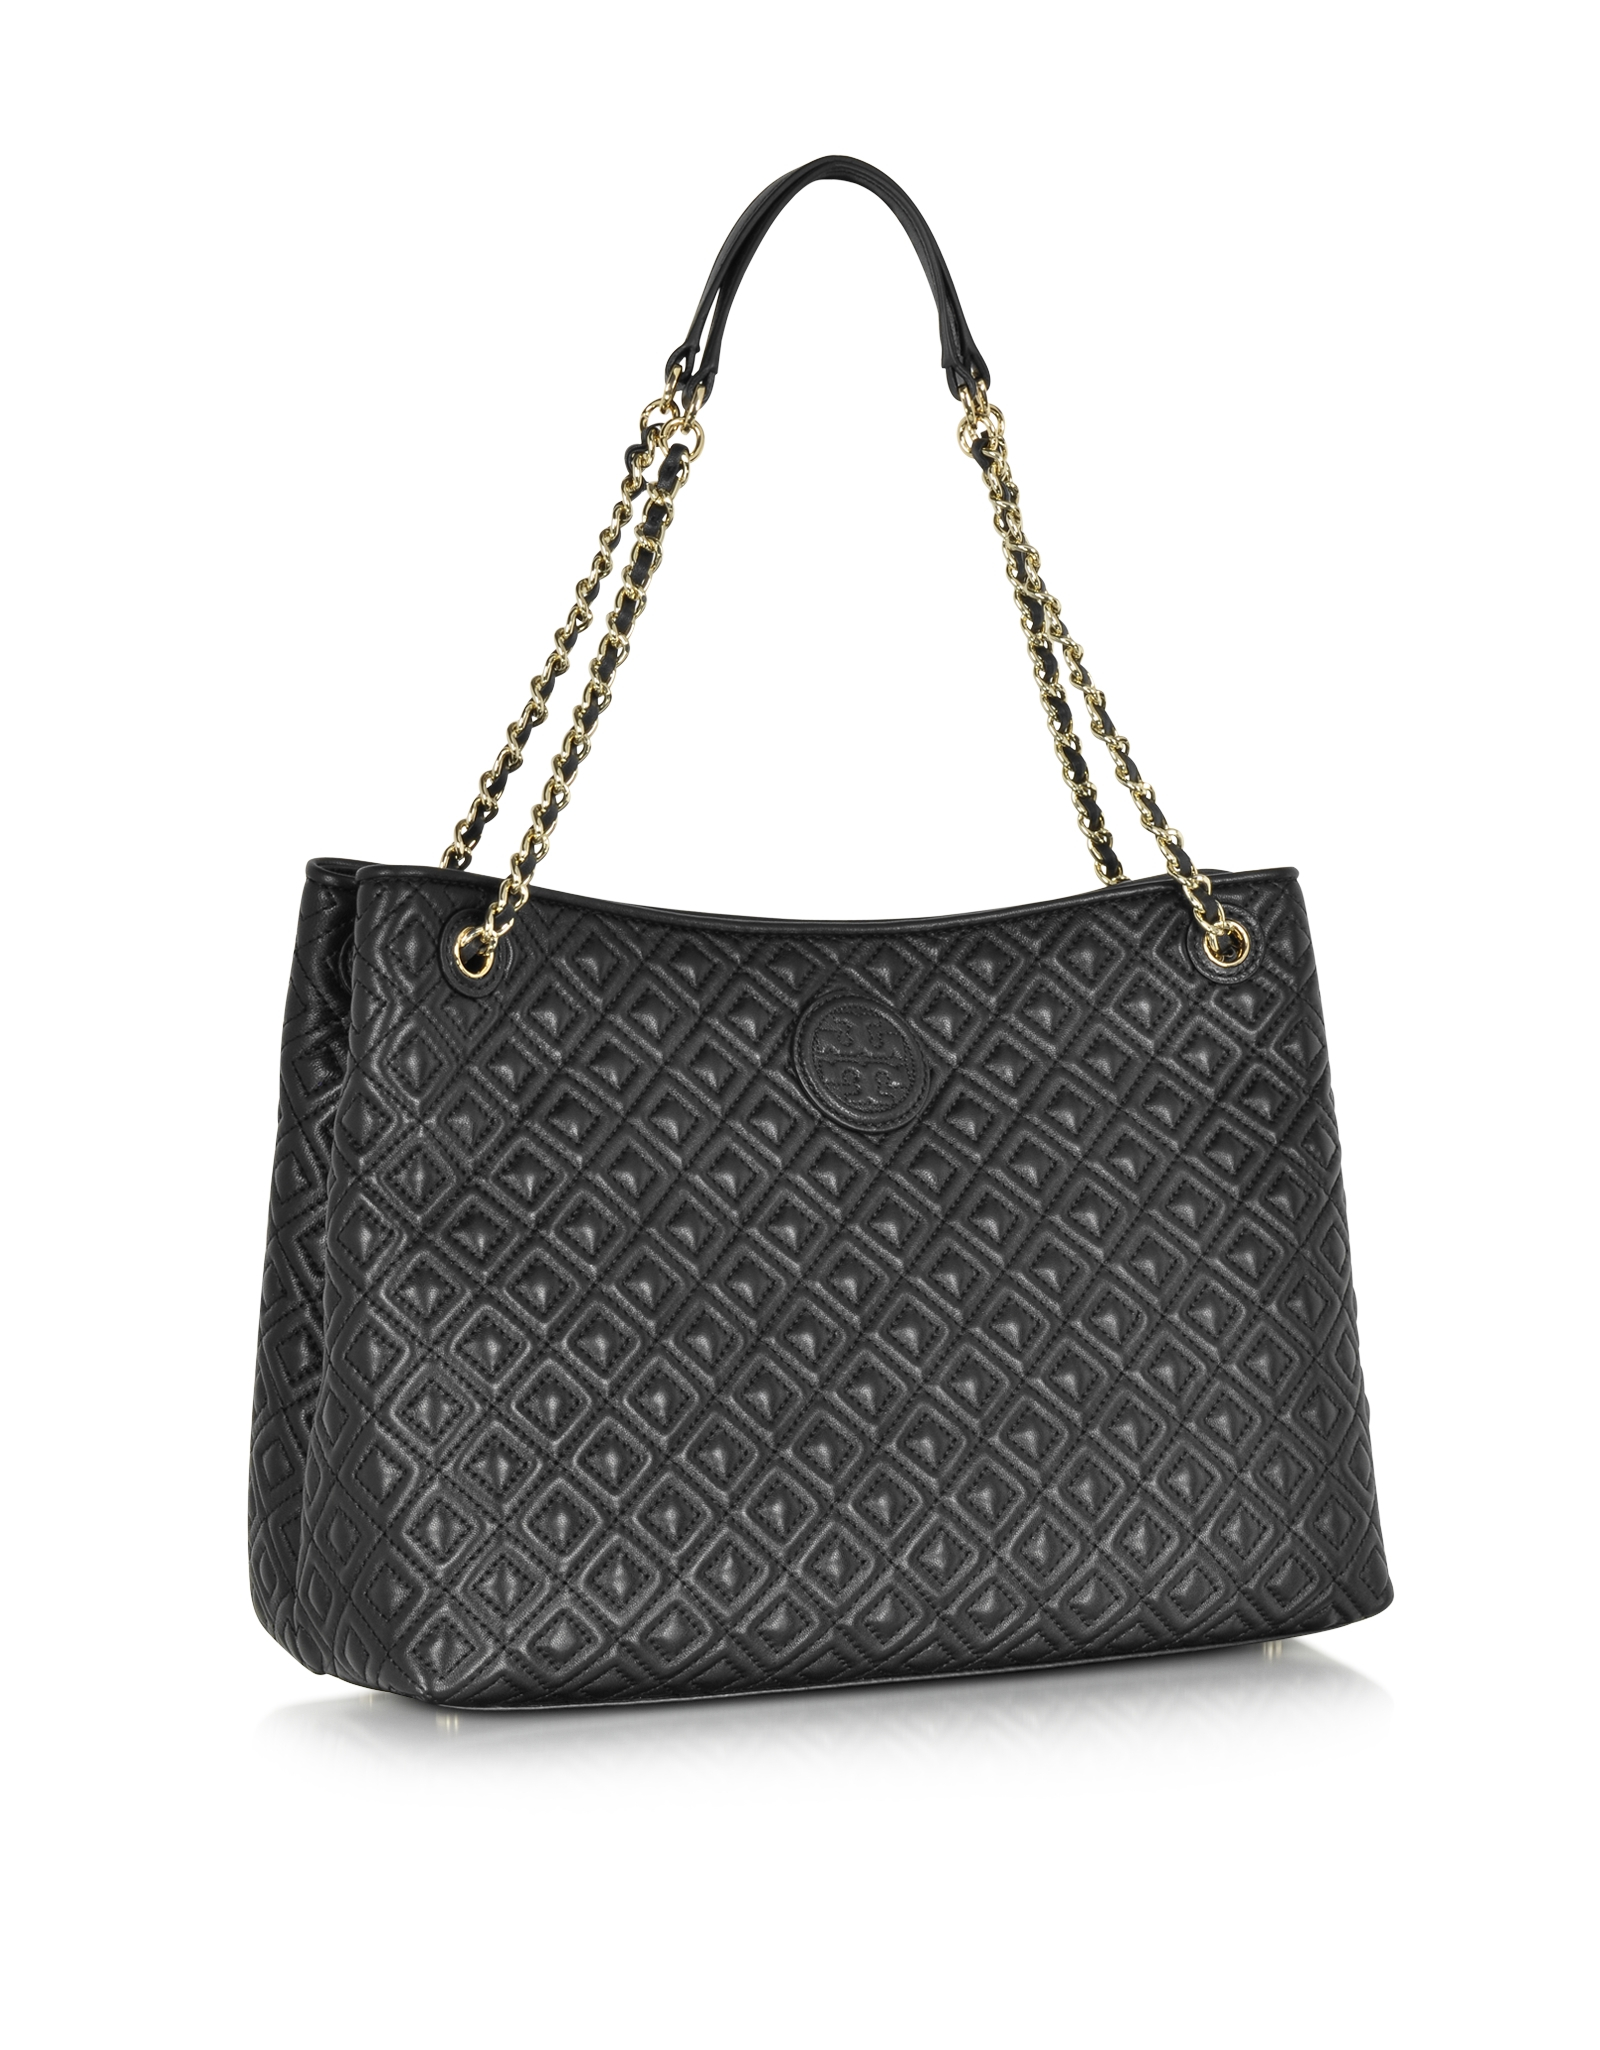 45f246b69f3 Lyst - Tory Burch Marion Quilted Chain Shoulder Slouchy Tote Bag in ...